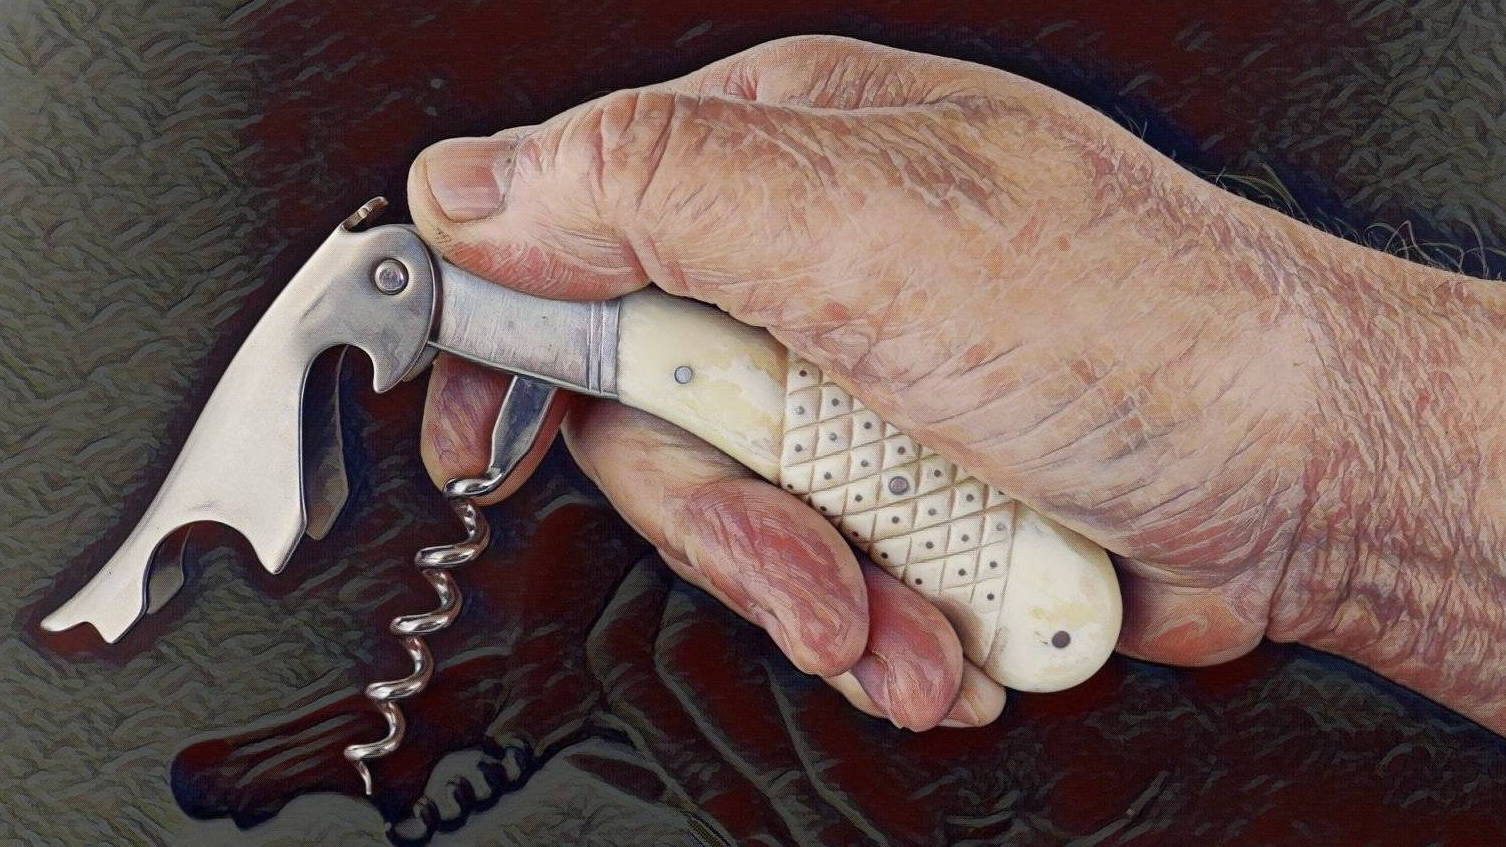 MAGNUM corkscrew shown in an adult man's hand for size perseption.